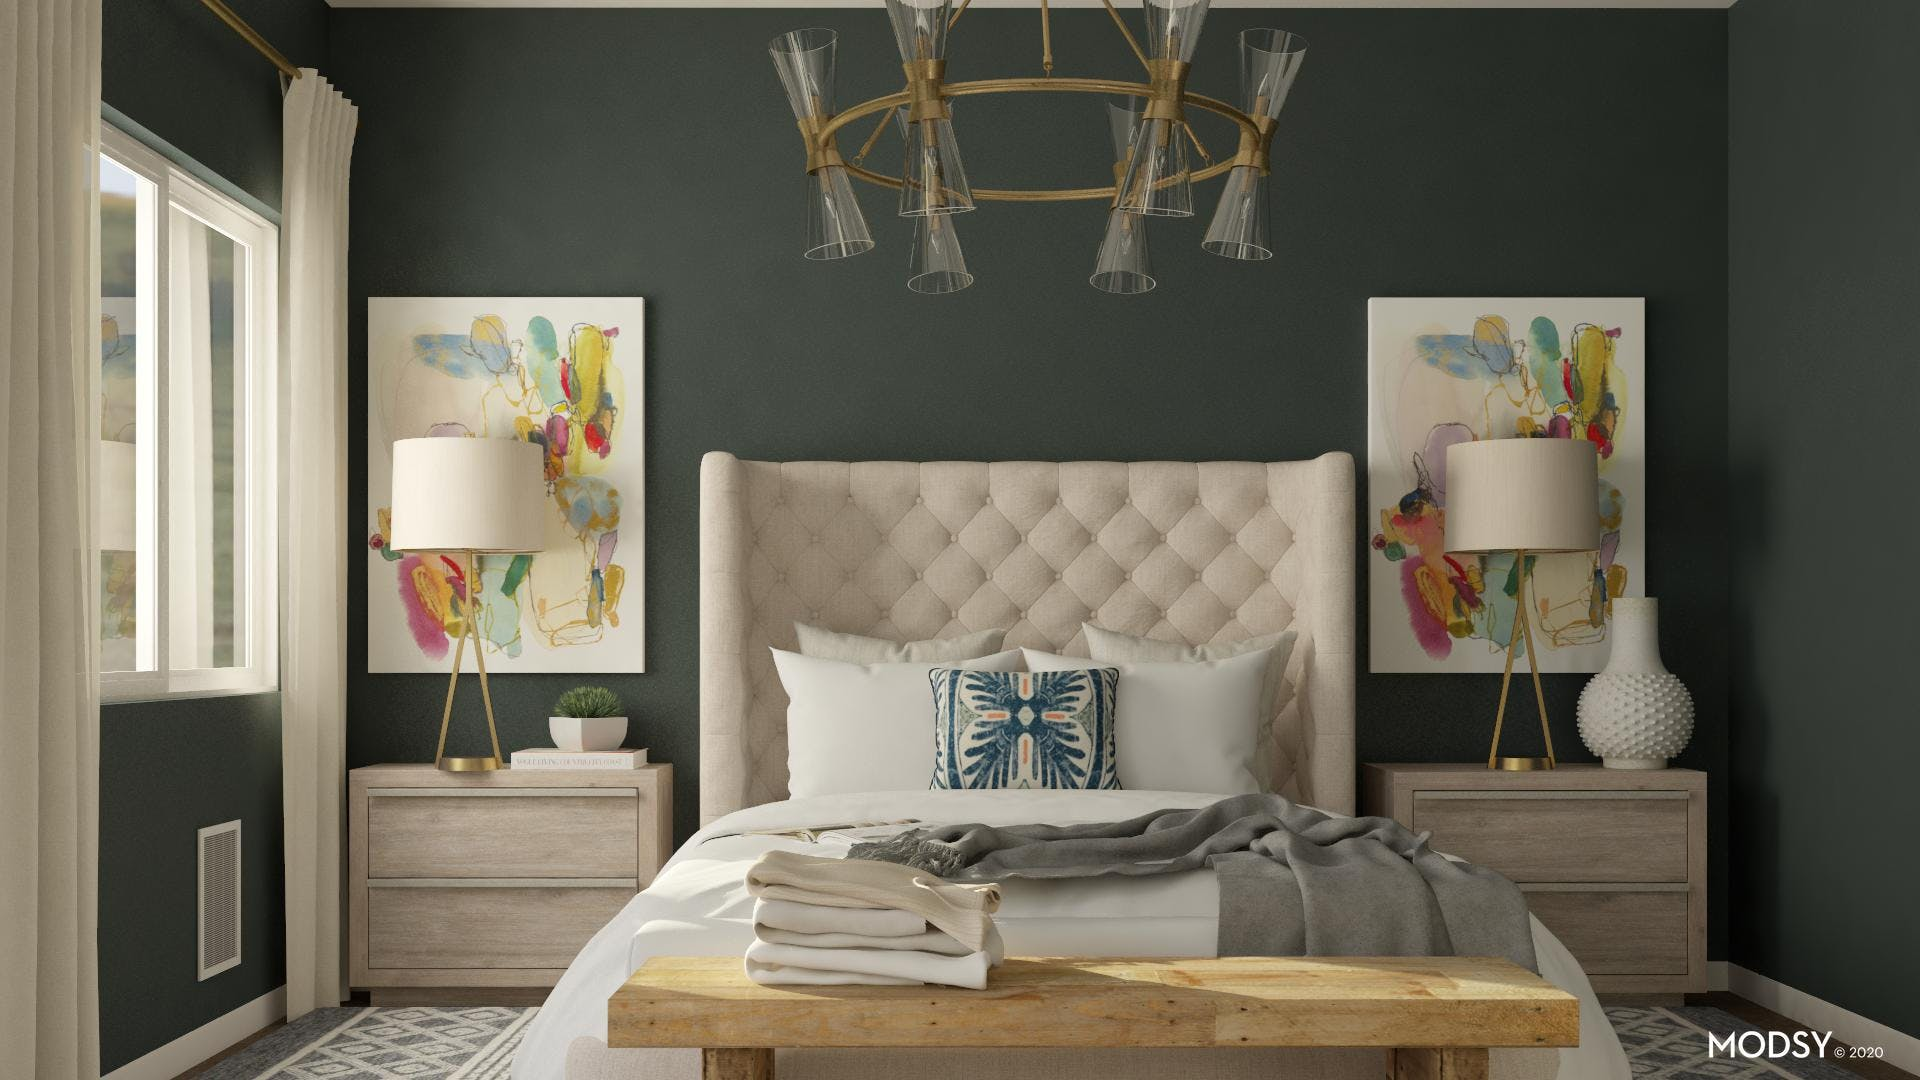 Creating A Curated Bedroom Design